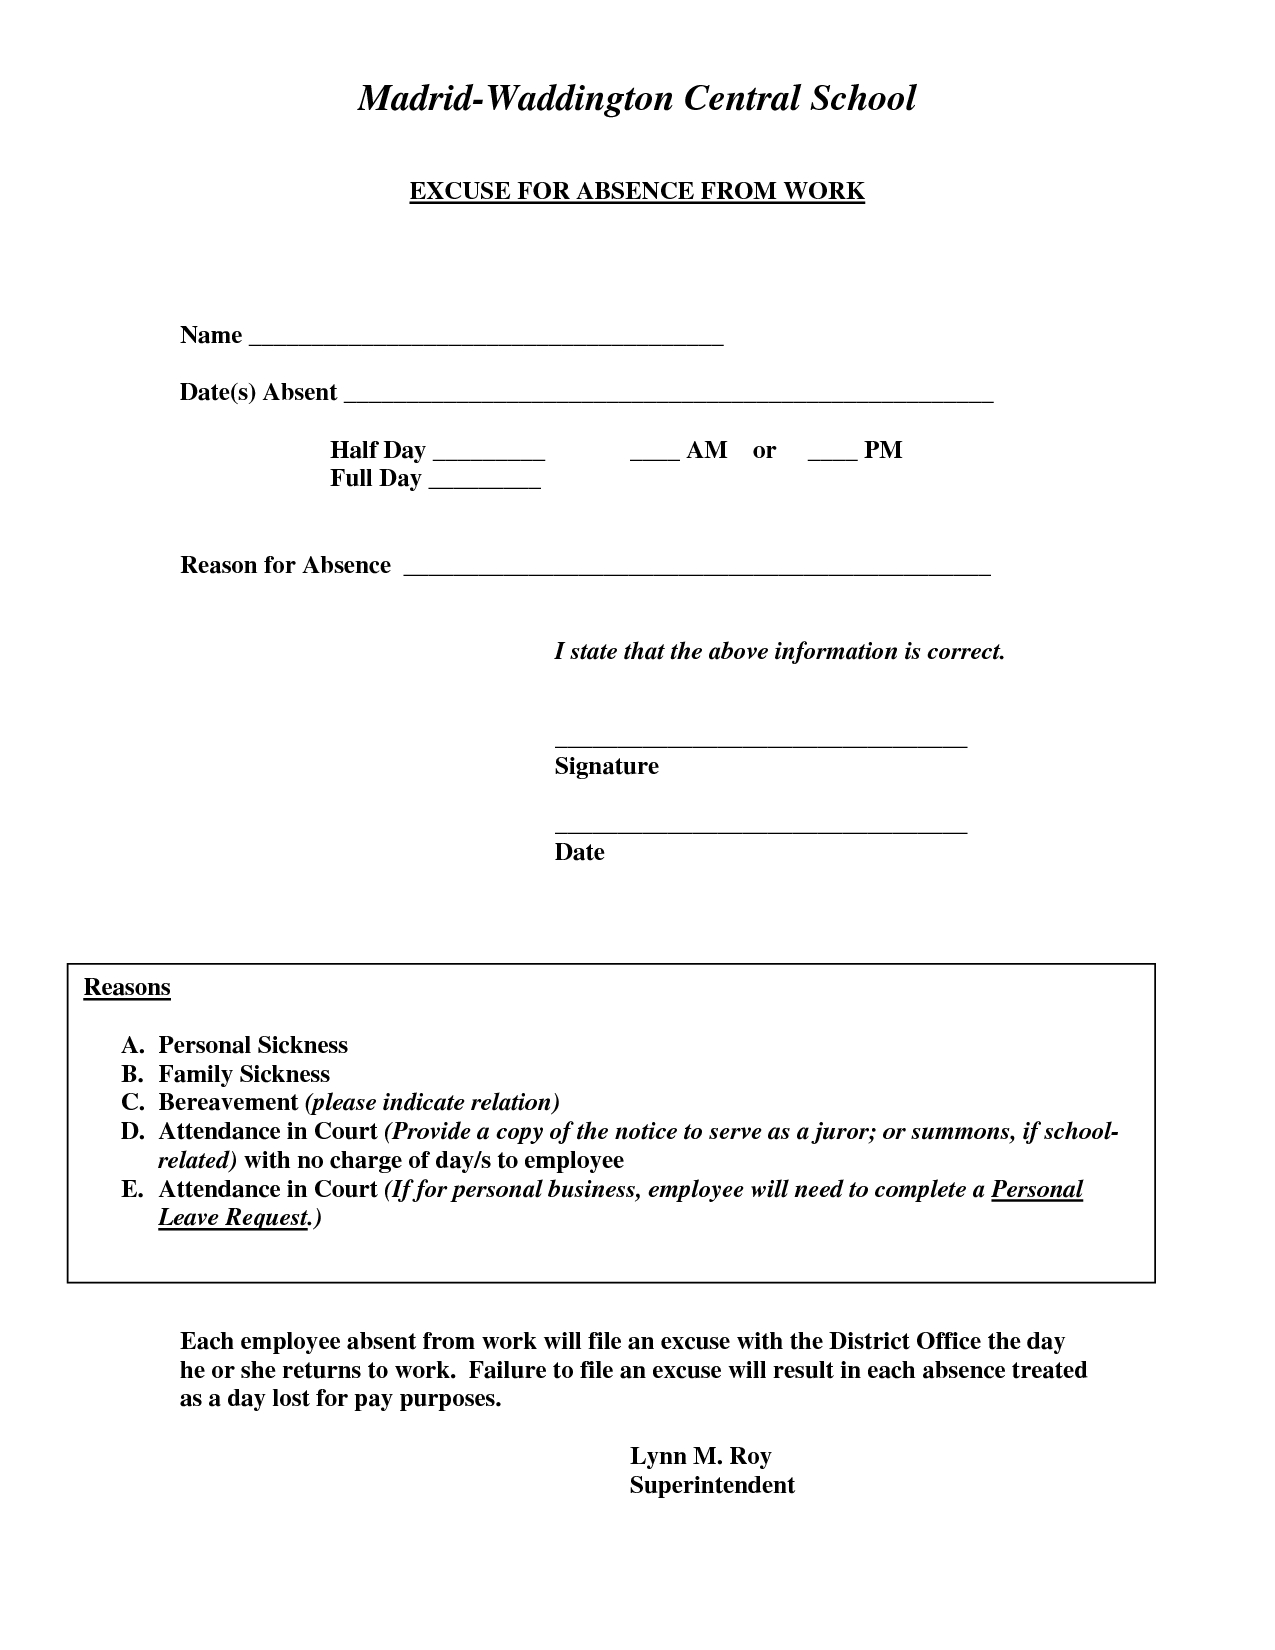 Doctors Excuse For Work Template | Excuse For Absence From Work - Free Printable Doctors Excuse For School